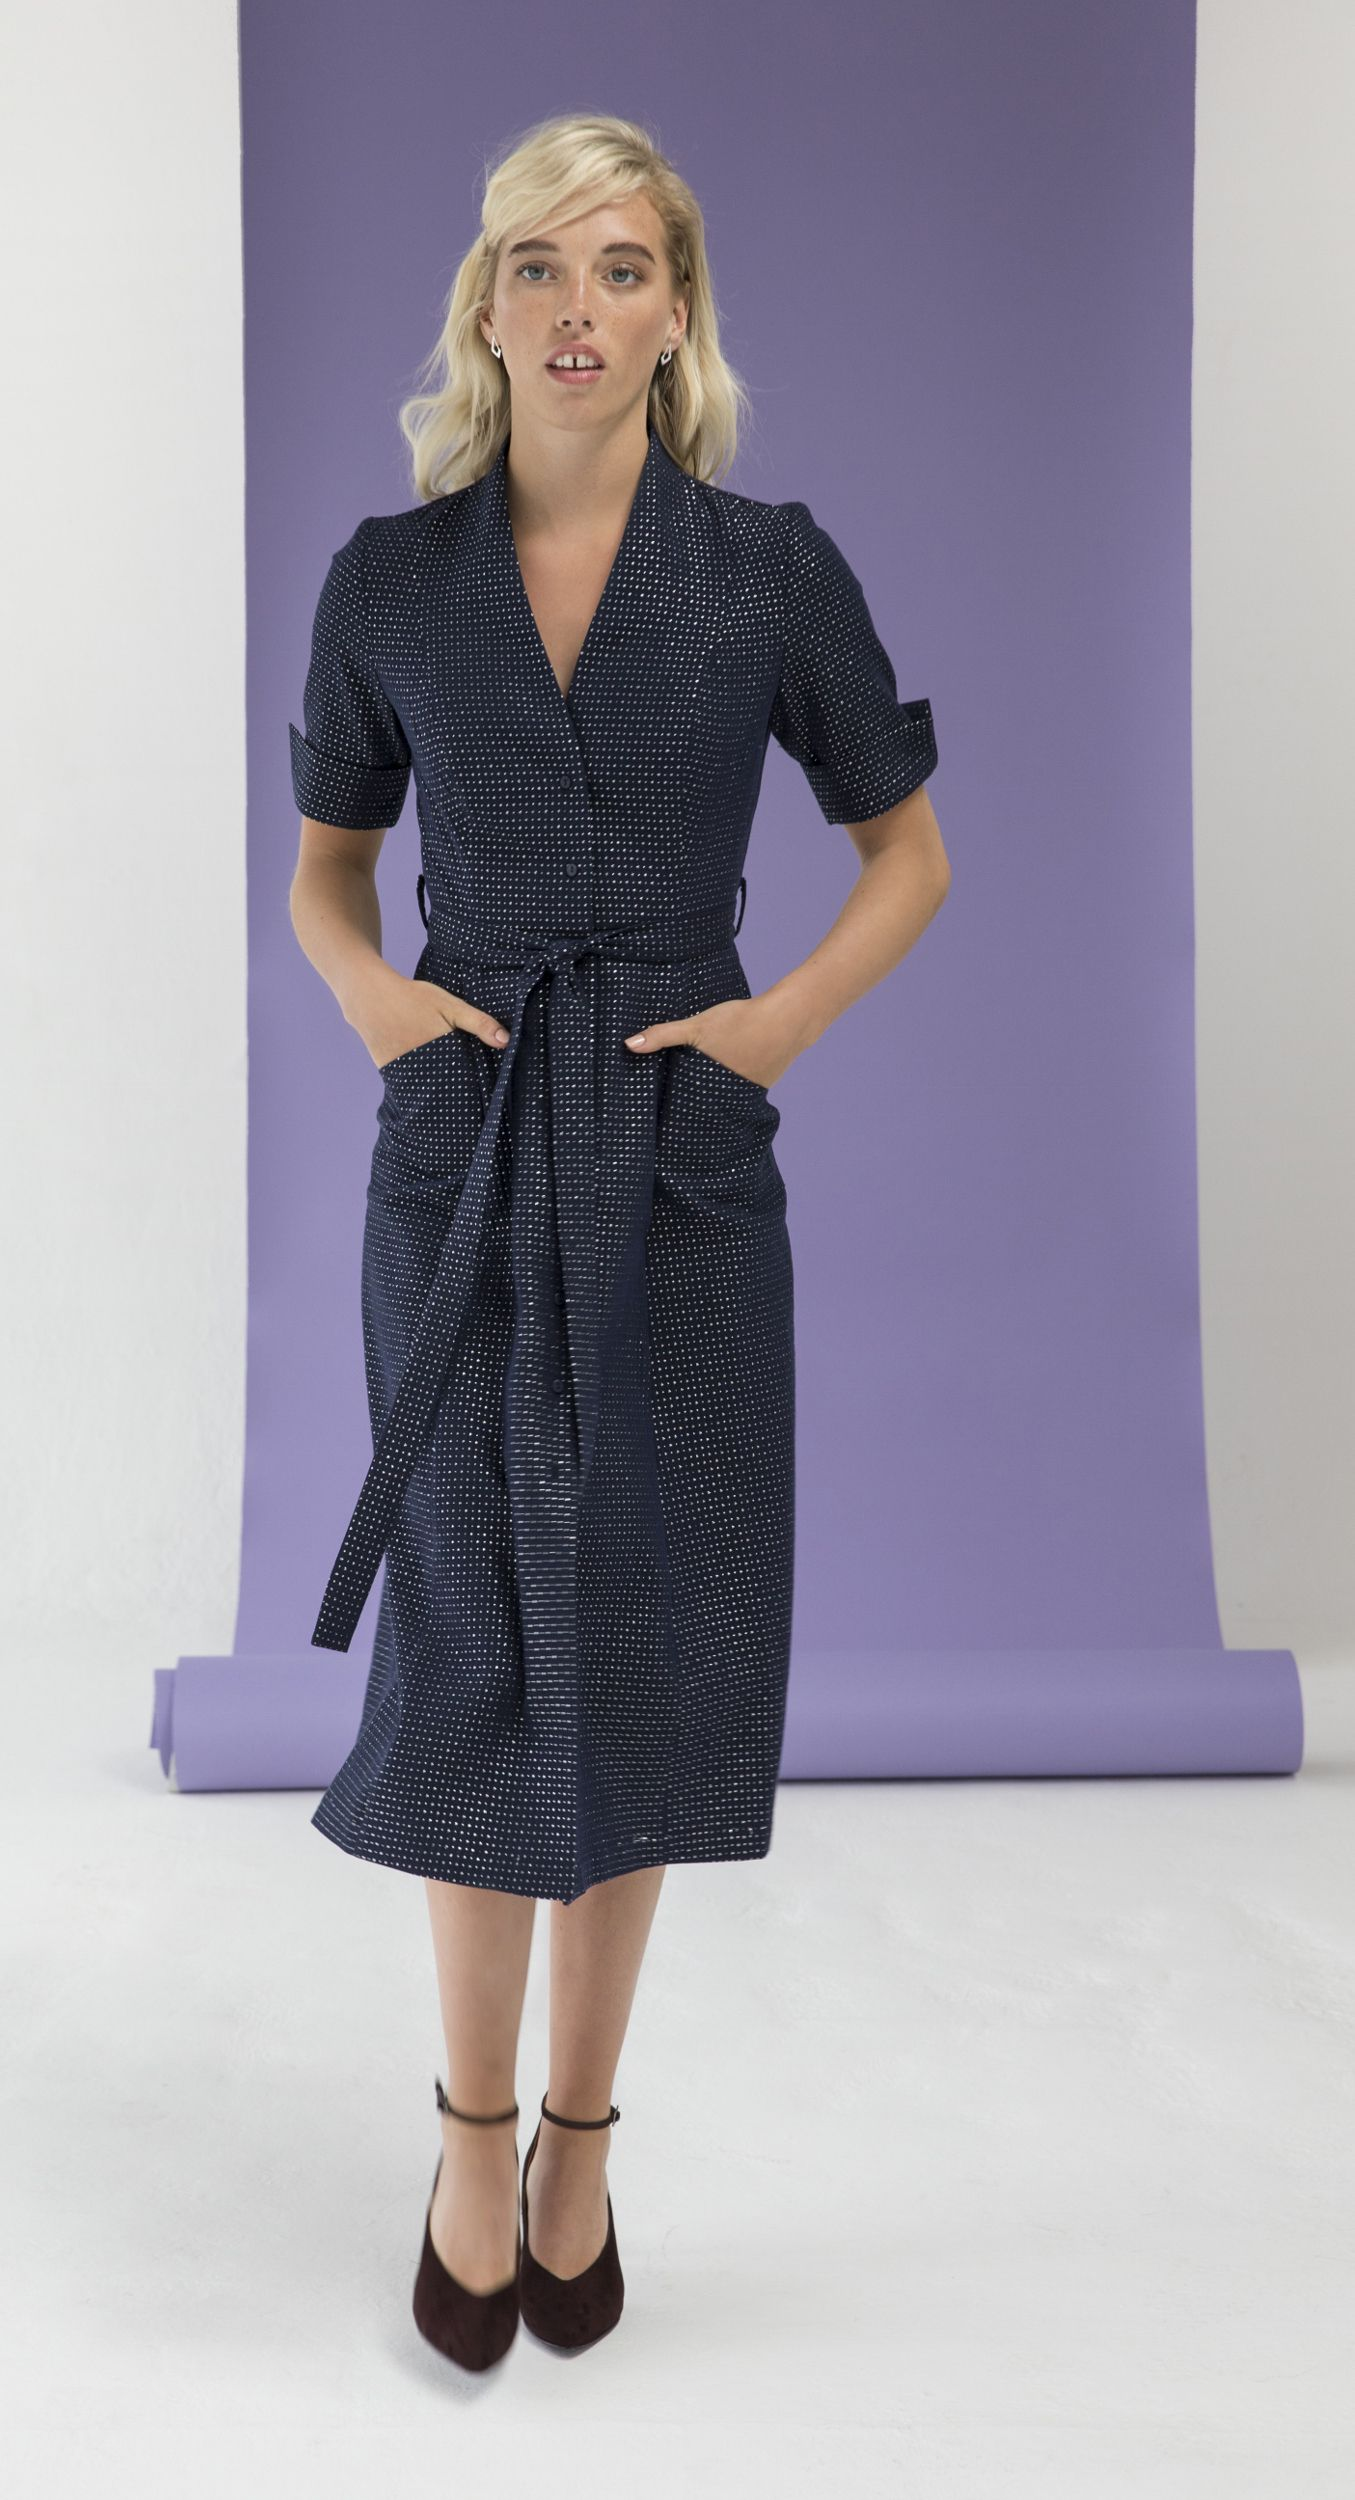 captivate the evening in this jazz textured coat dress dressss